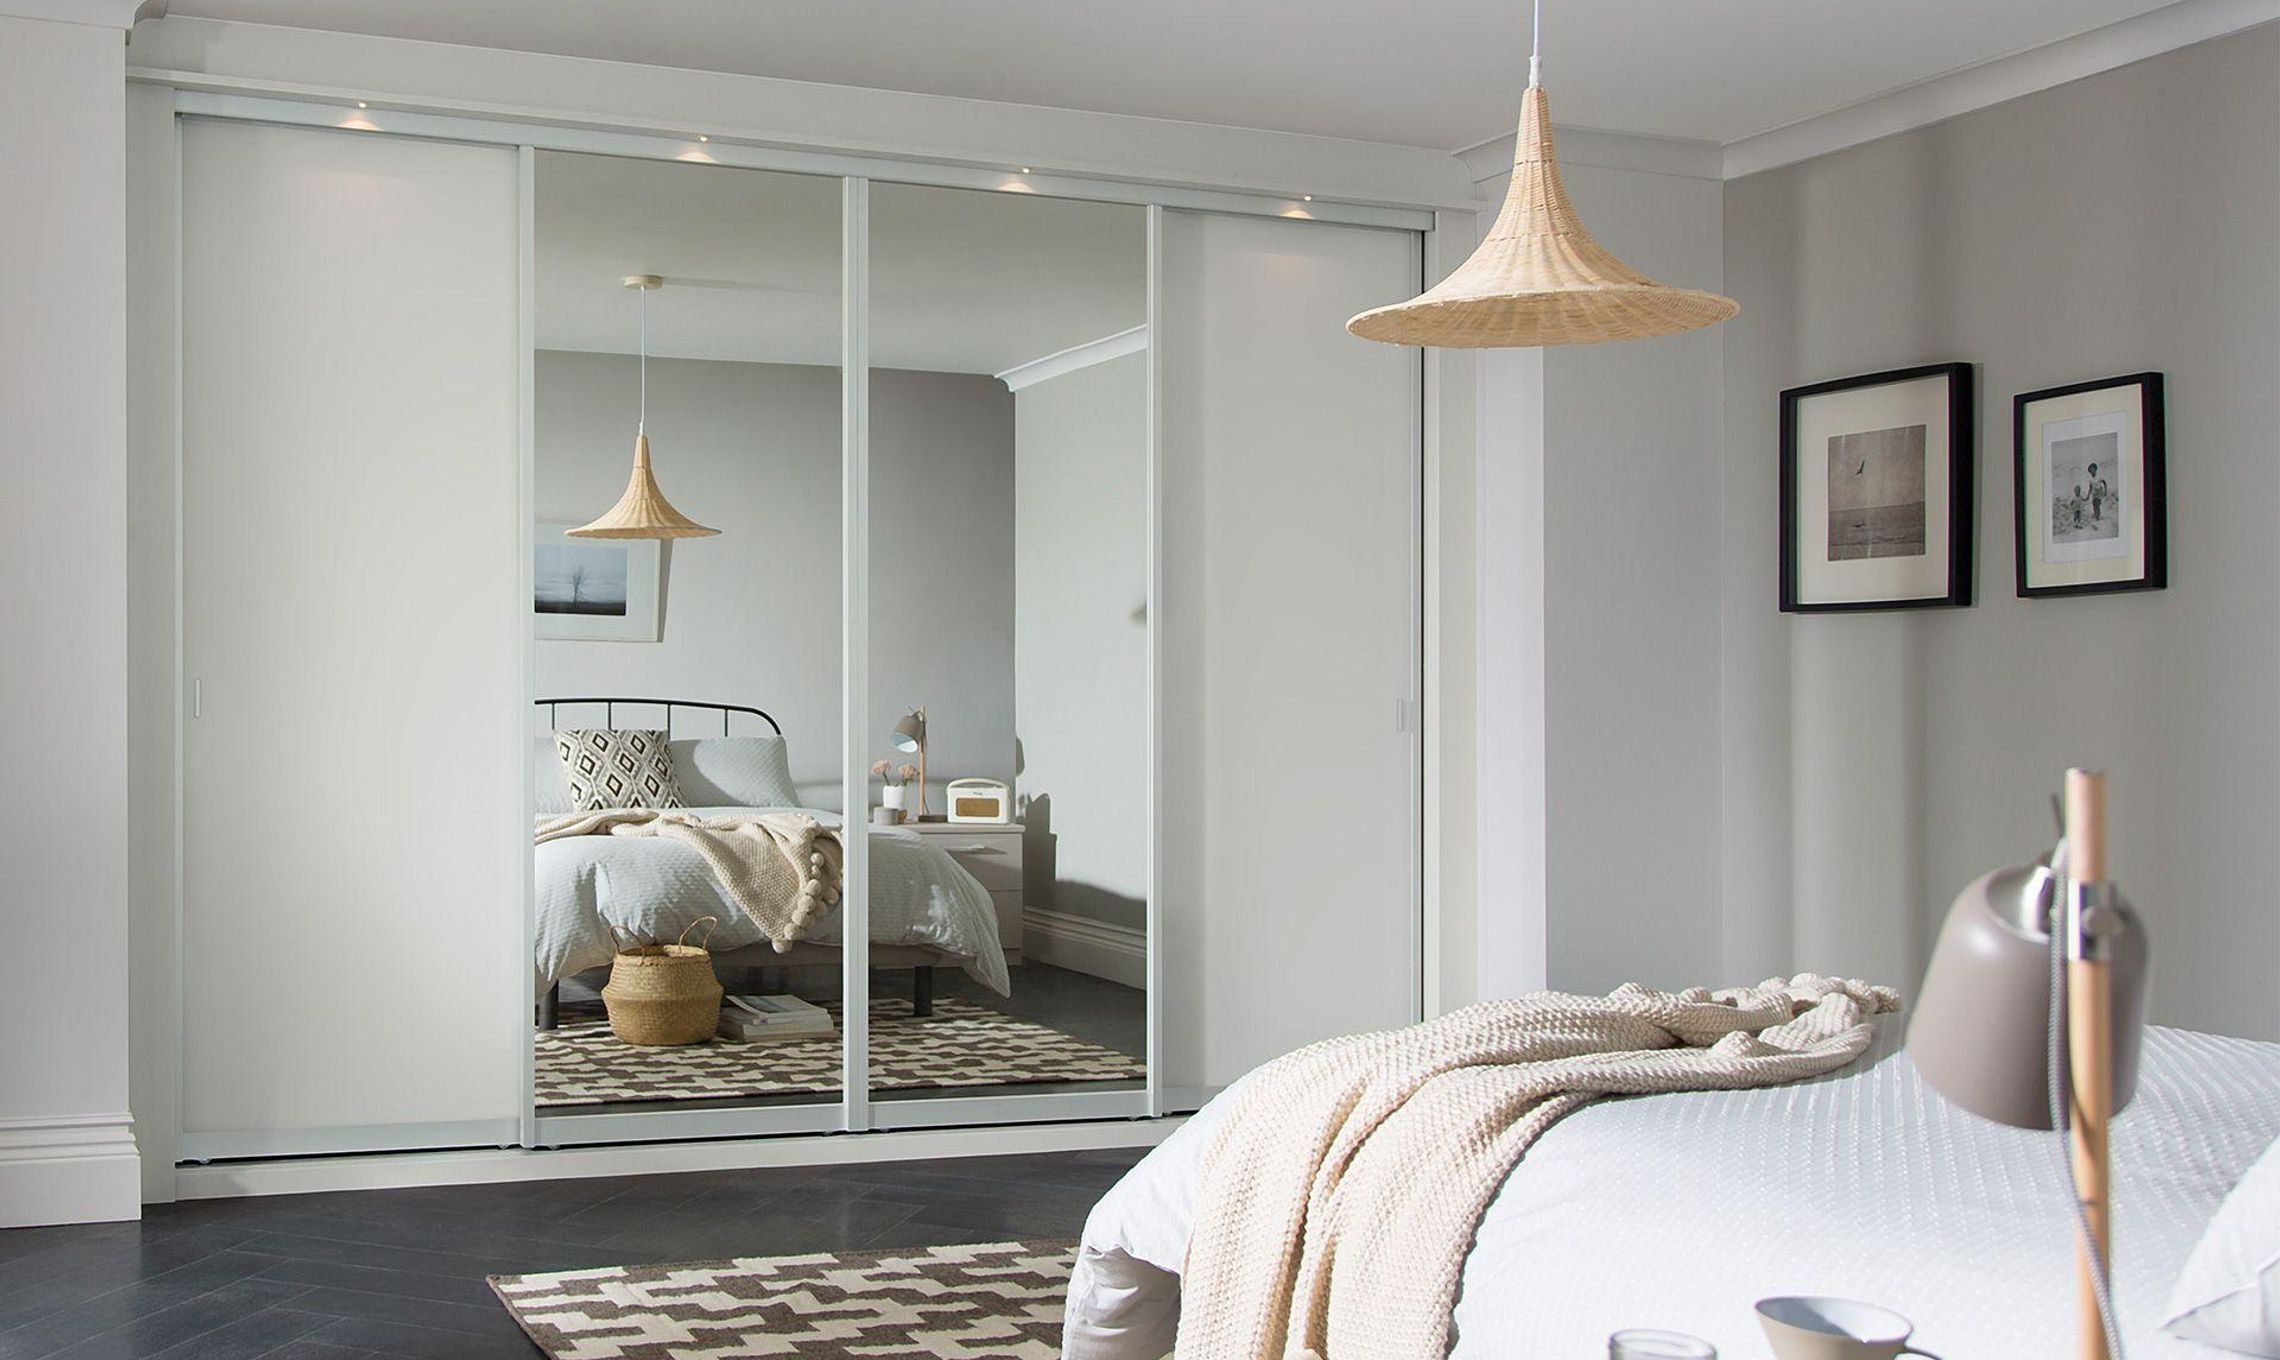 competitive price 9ccf8 9ed01 Bespoke Sliding Door Wardrobes | Sharps Bedrooms | Apartment ...